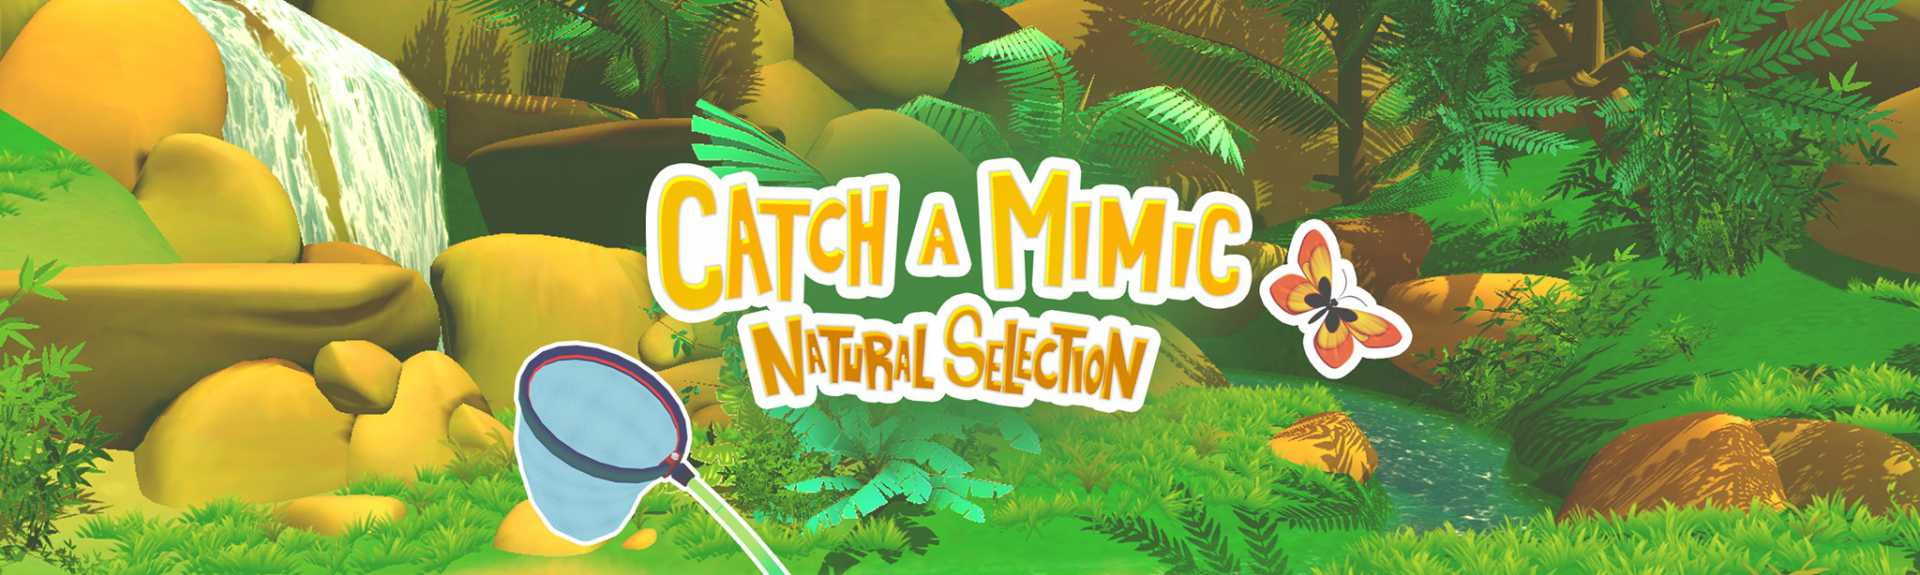 Catch a Mimic: Natural Selection